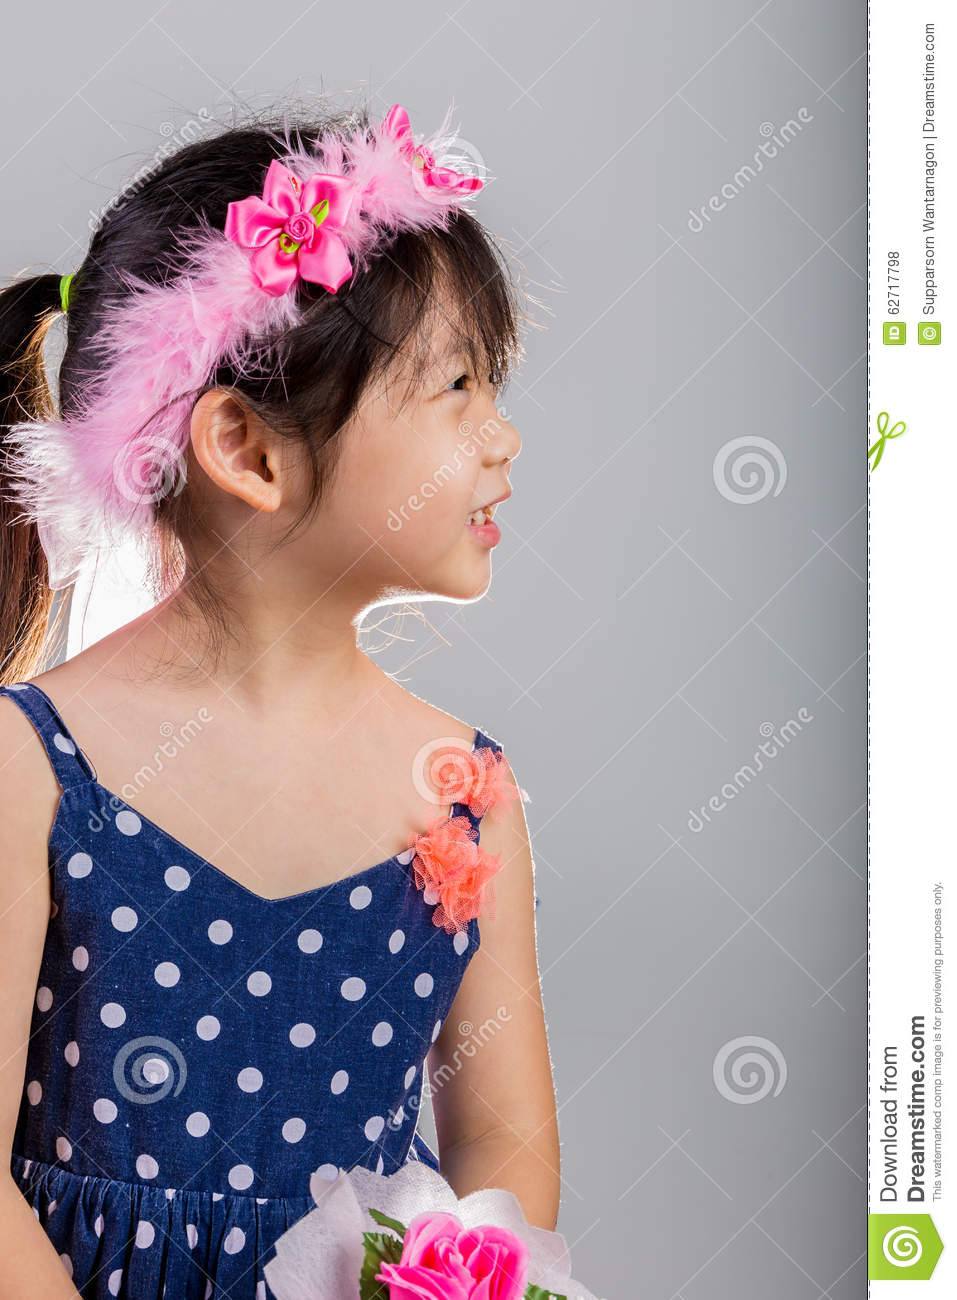 Child wearing flower crown young girl with flower crown stock child wearing flower crown young girl with flower crown izmirmasajfo Gallery